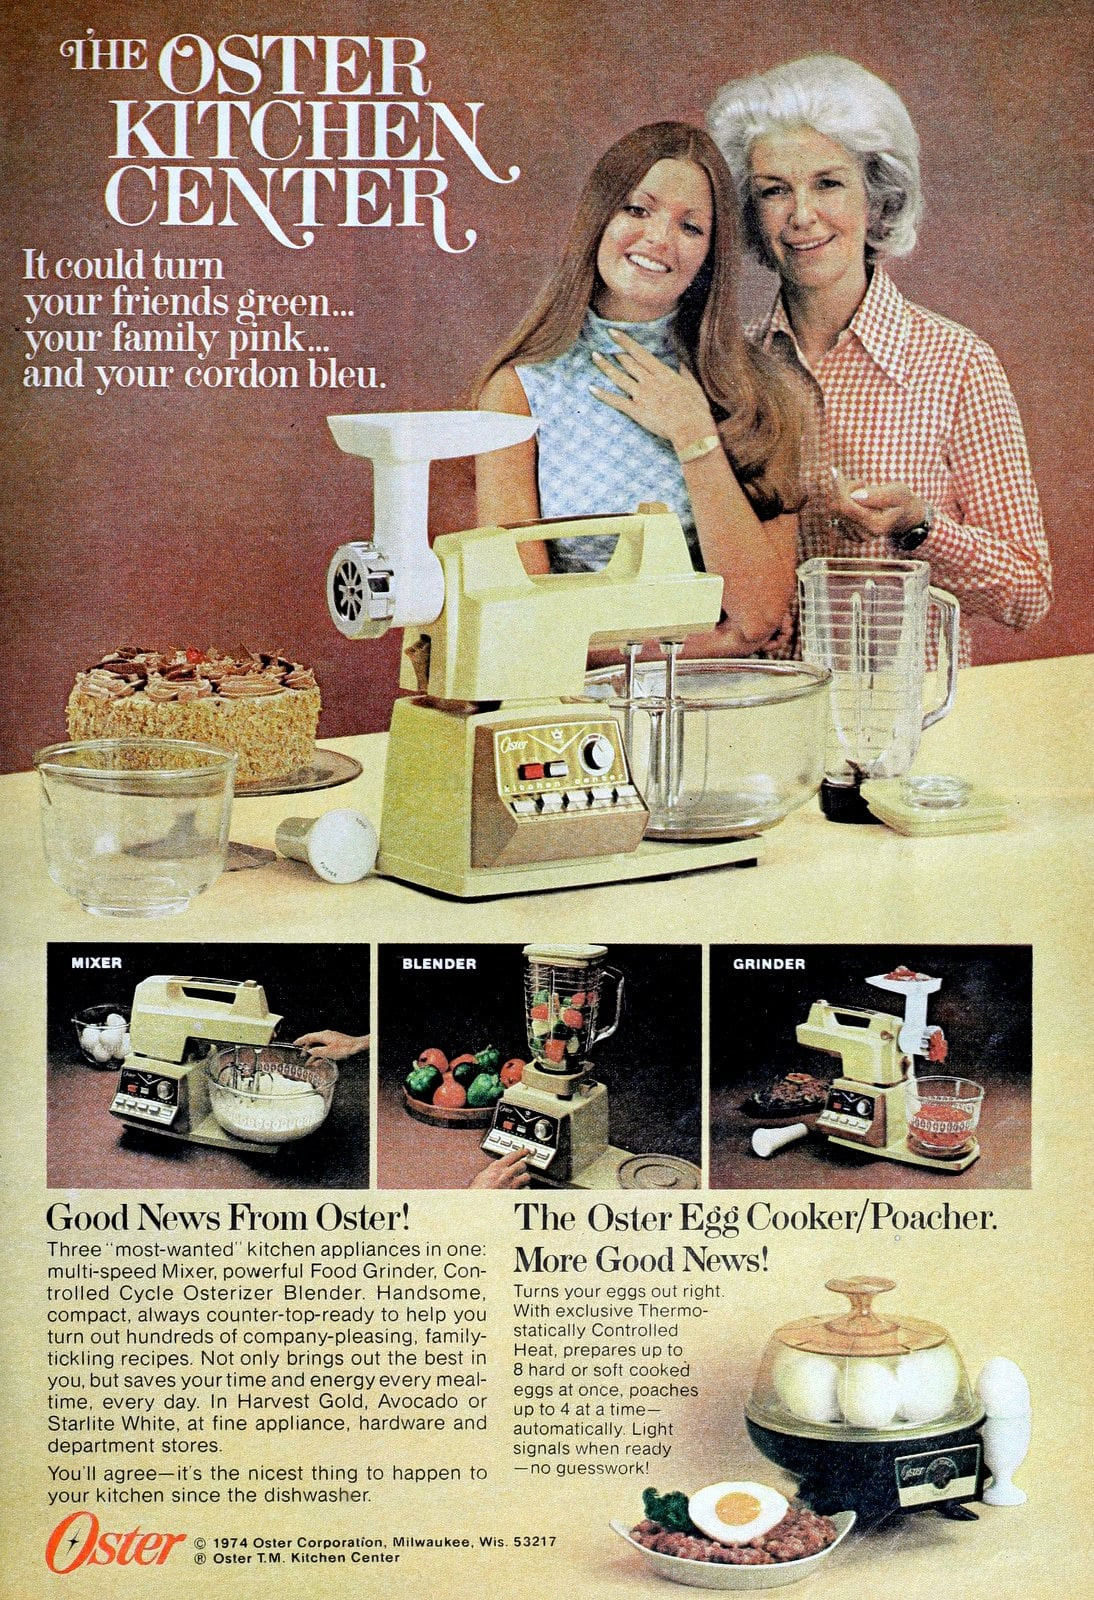 Vintage Oster Kitchen Center stand mixer and tools (1974)